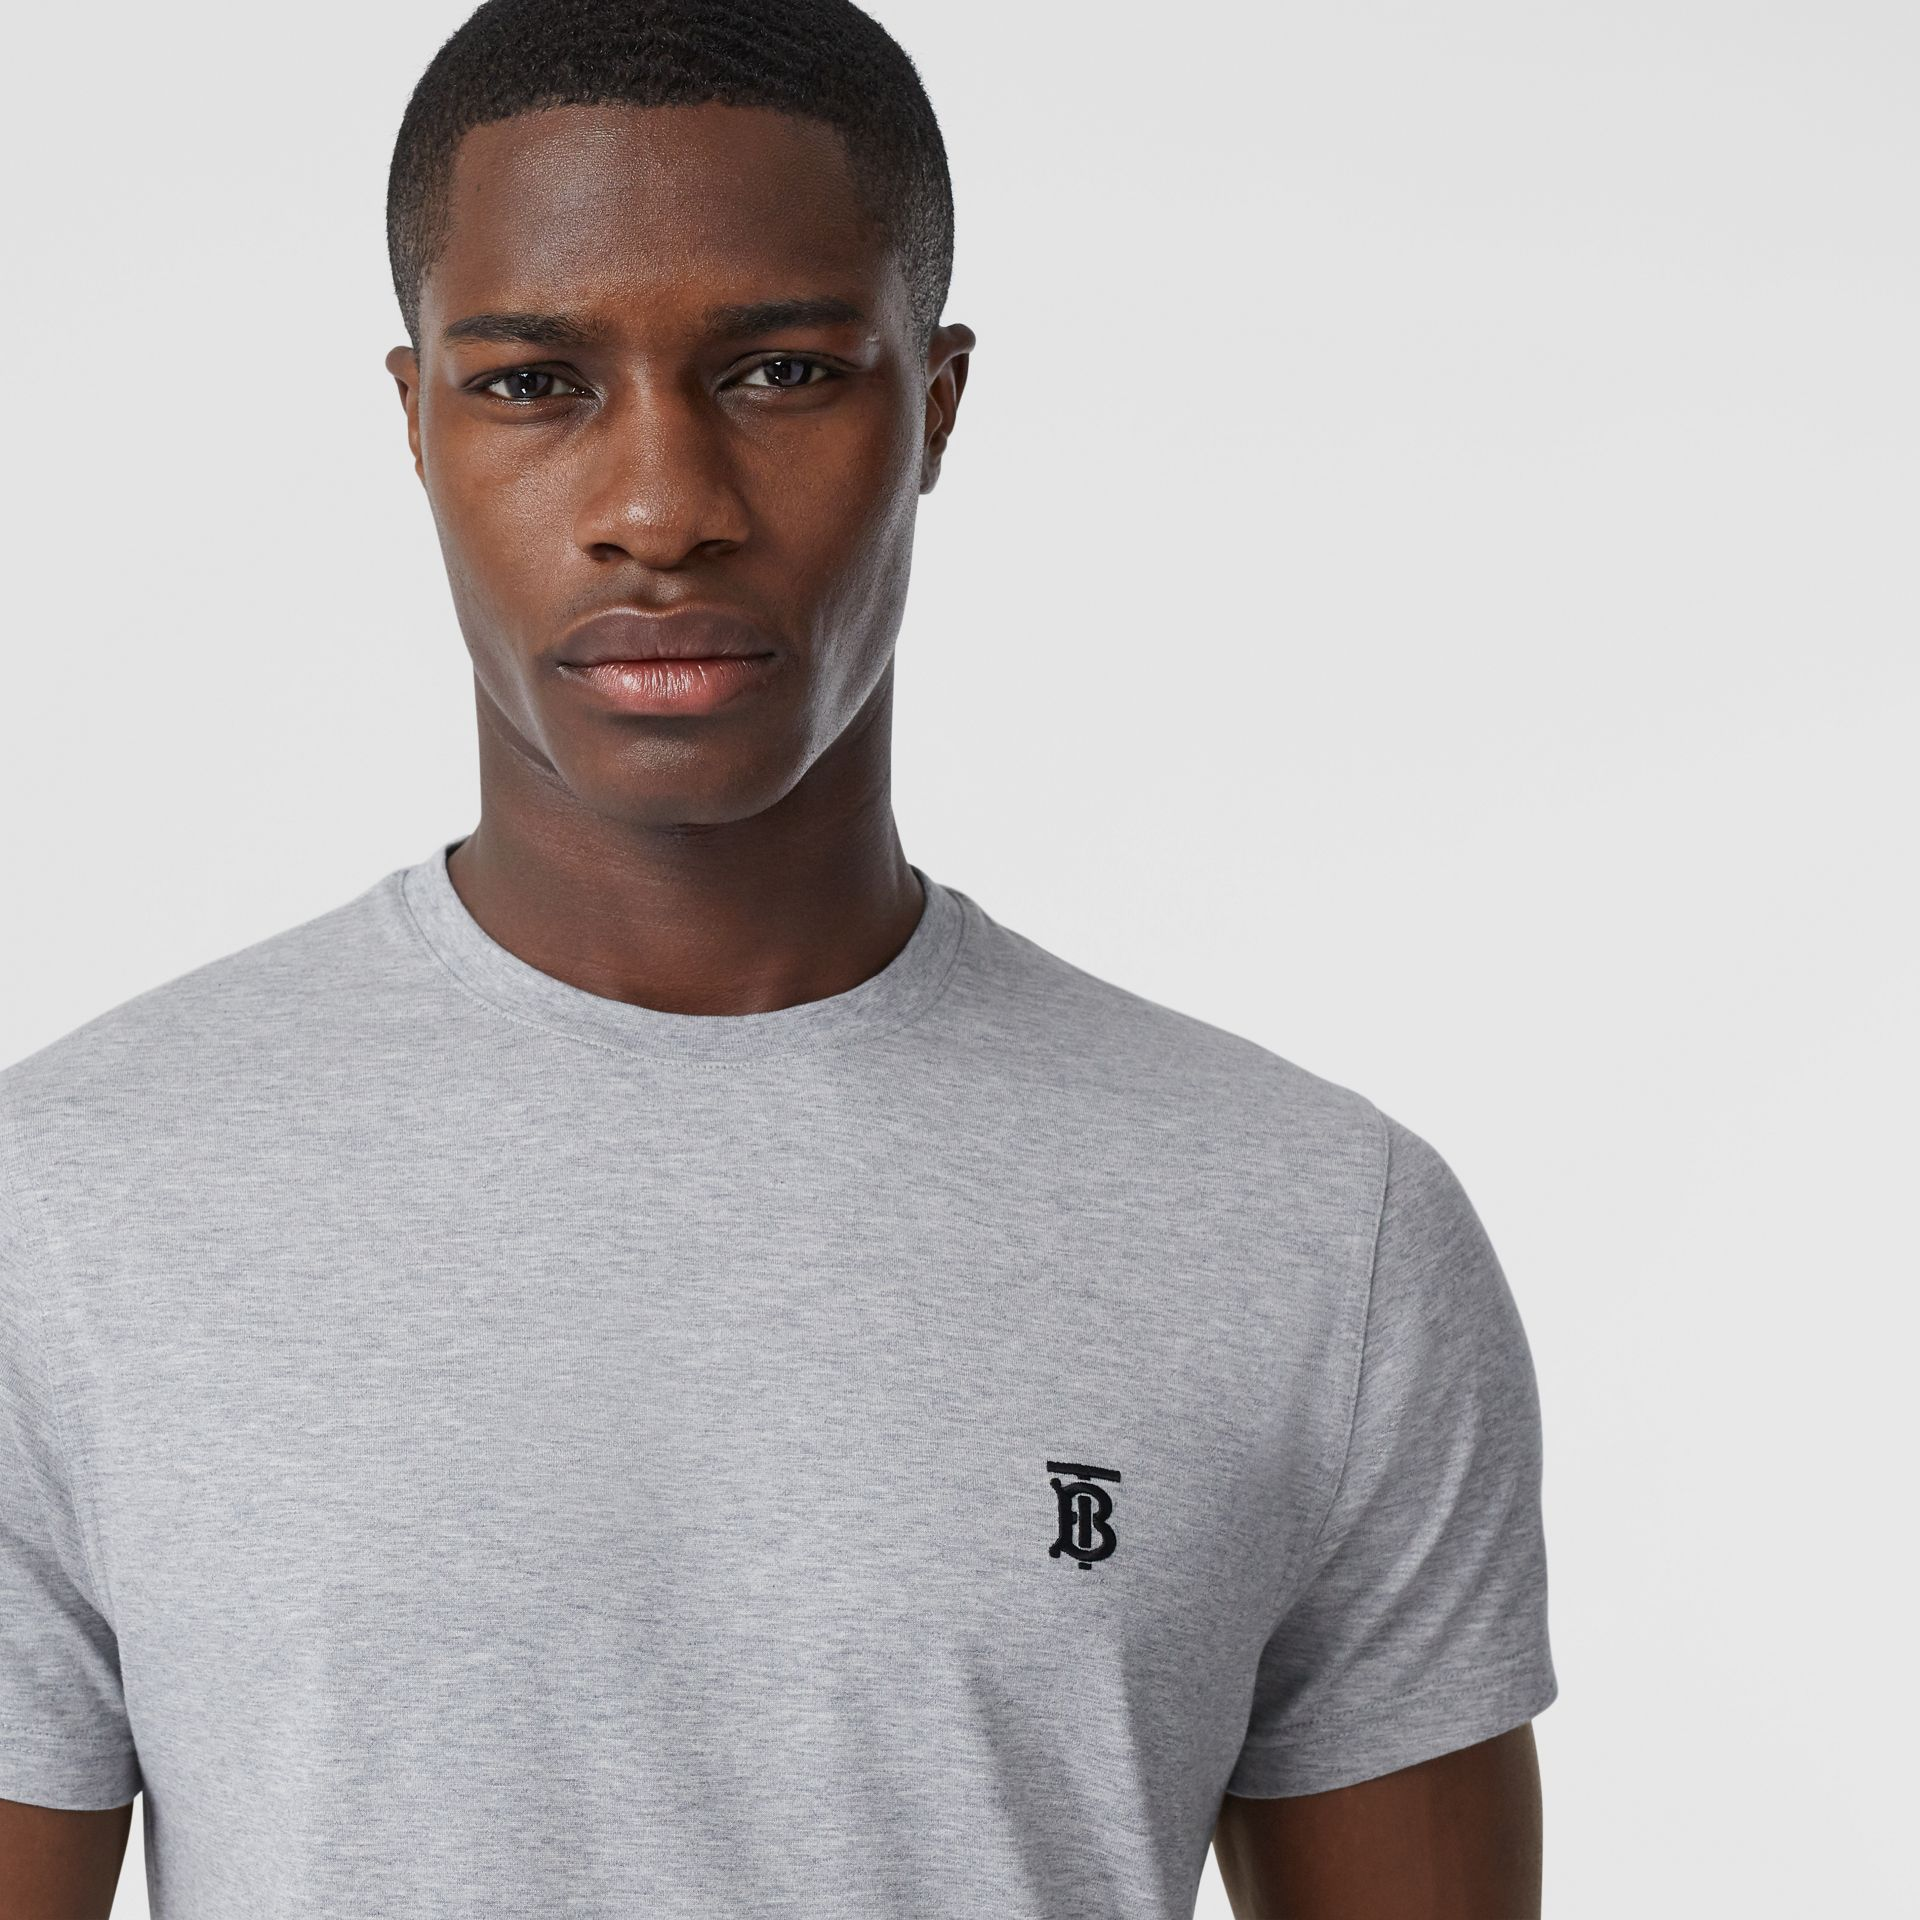 Monogram Motif Cotton T-shirt in Pale Grey Melange - Men | Burberry - gallery image 1